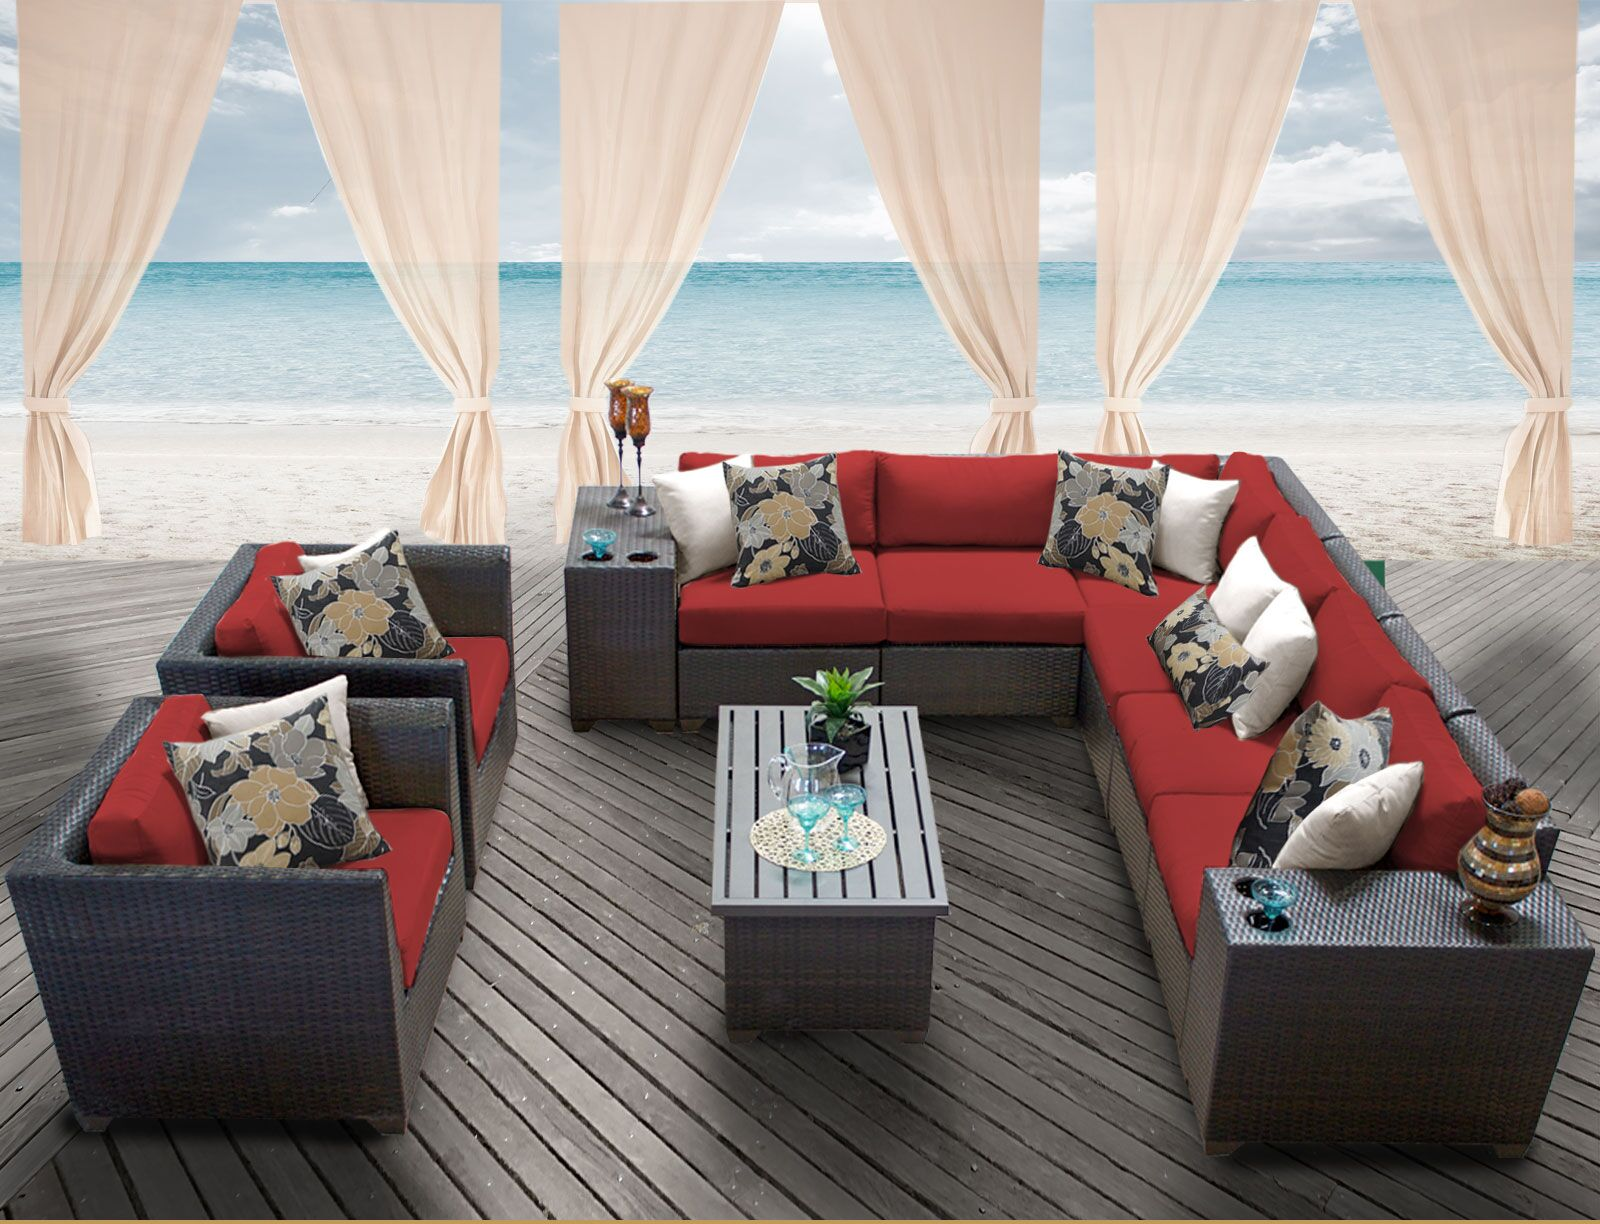 Barbados 11 Piece Rattan Sectional Set with Cushions Color: Terracotta